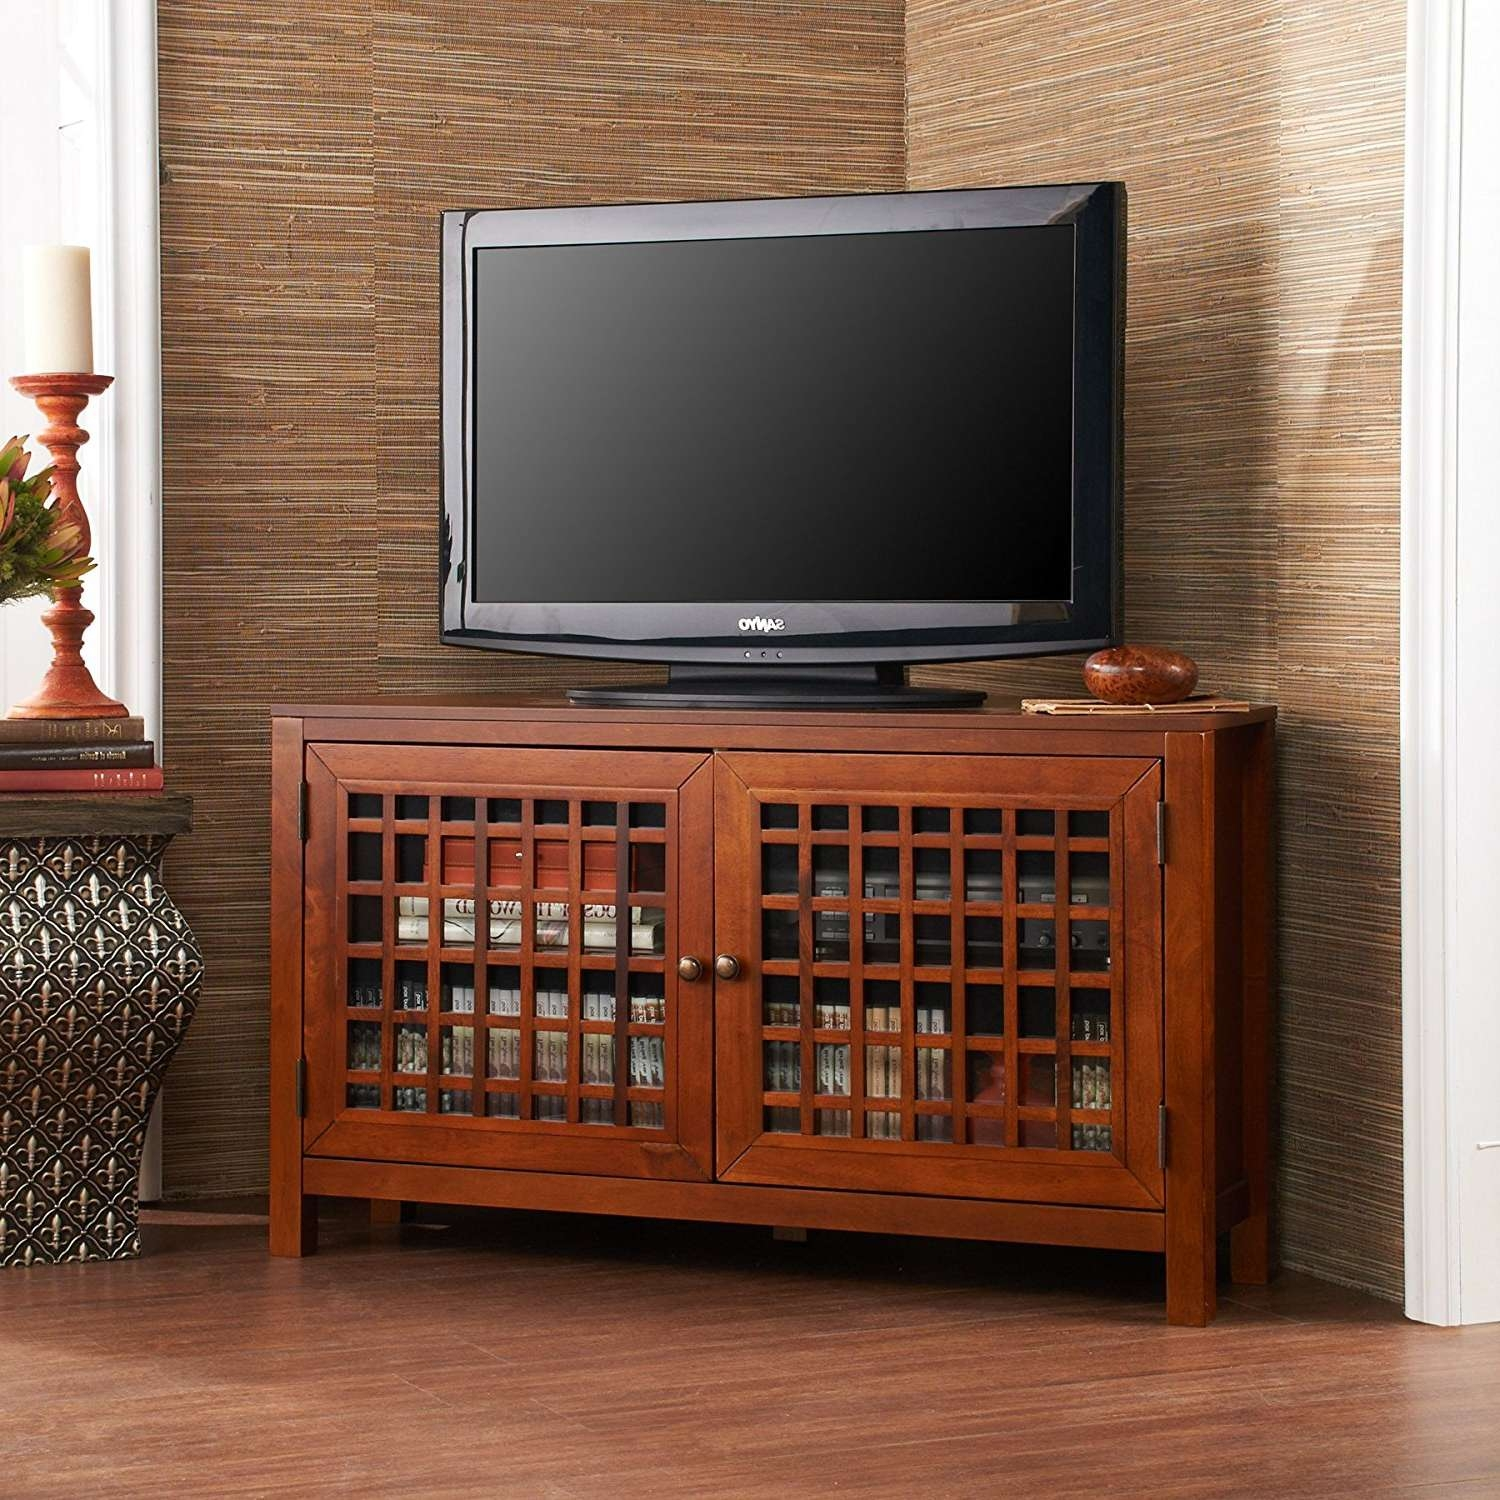 Tremendous 24 Inch Corner Tv Stands Tags : 24 Inch Corner Tv With 24 Inch Led Tv Stands (View 2 of 15)